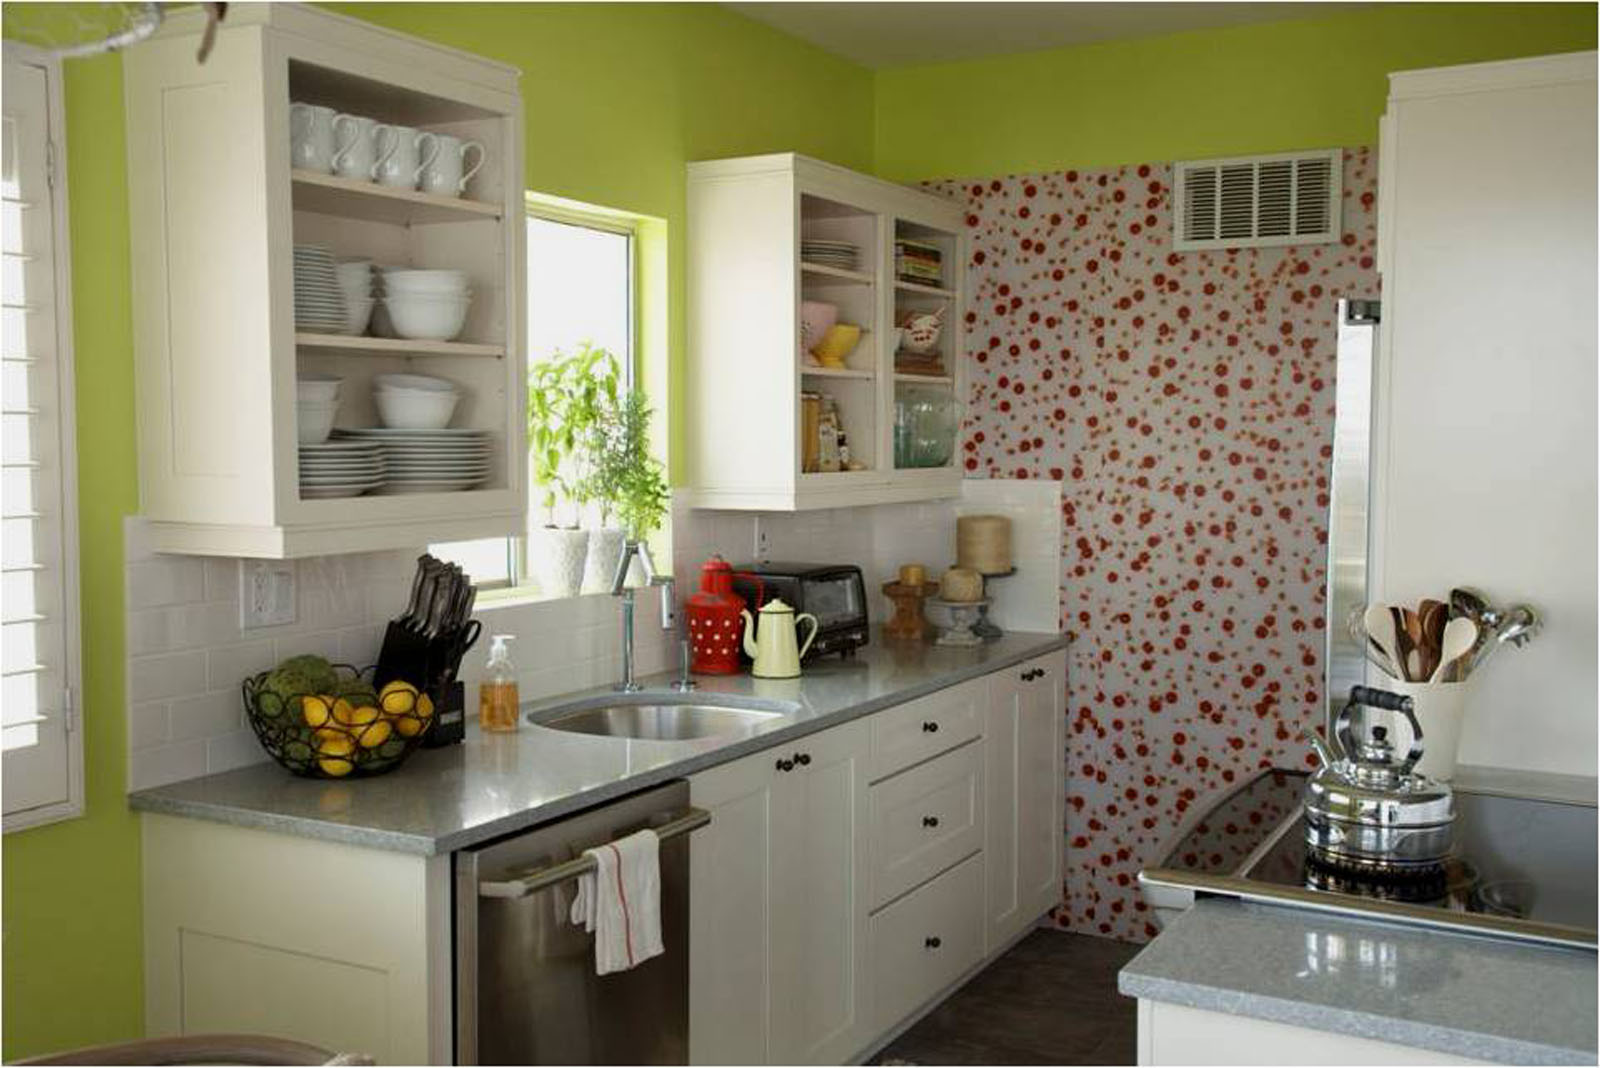 Small kitchen ideas on a budget for Low budget kitchen ideas